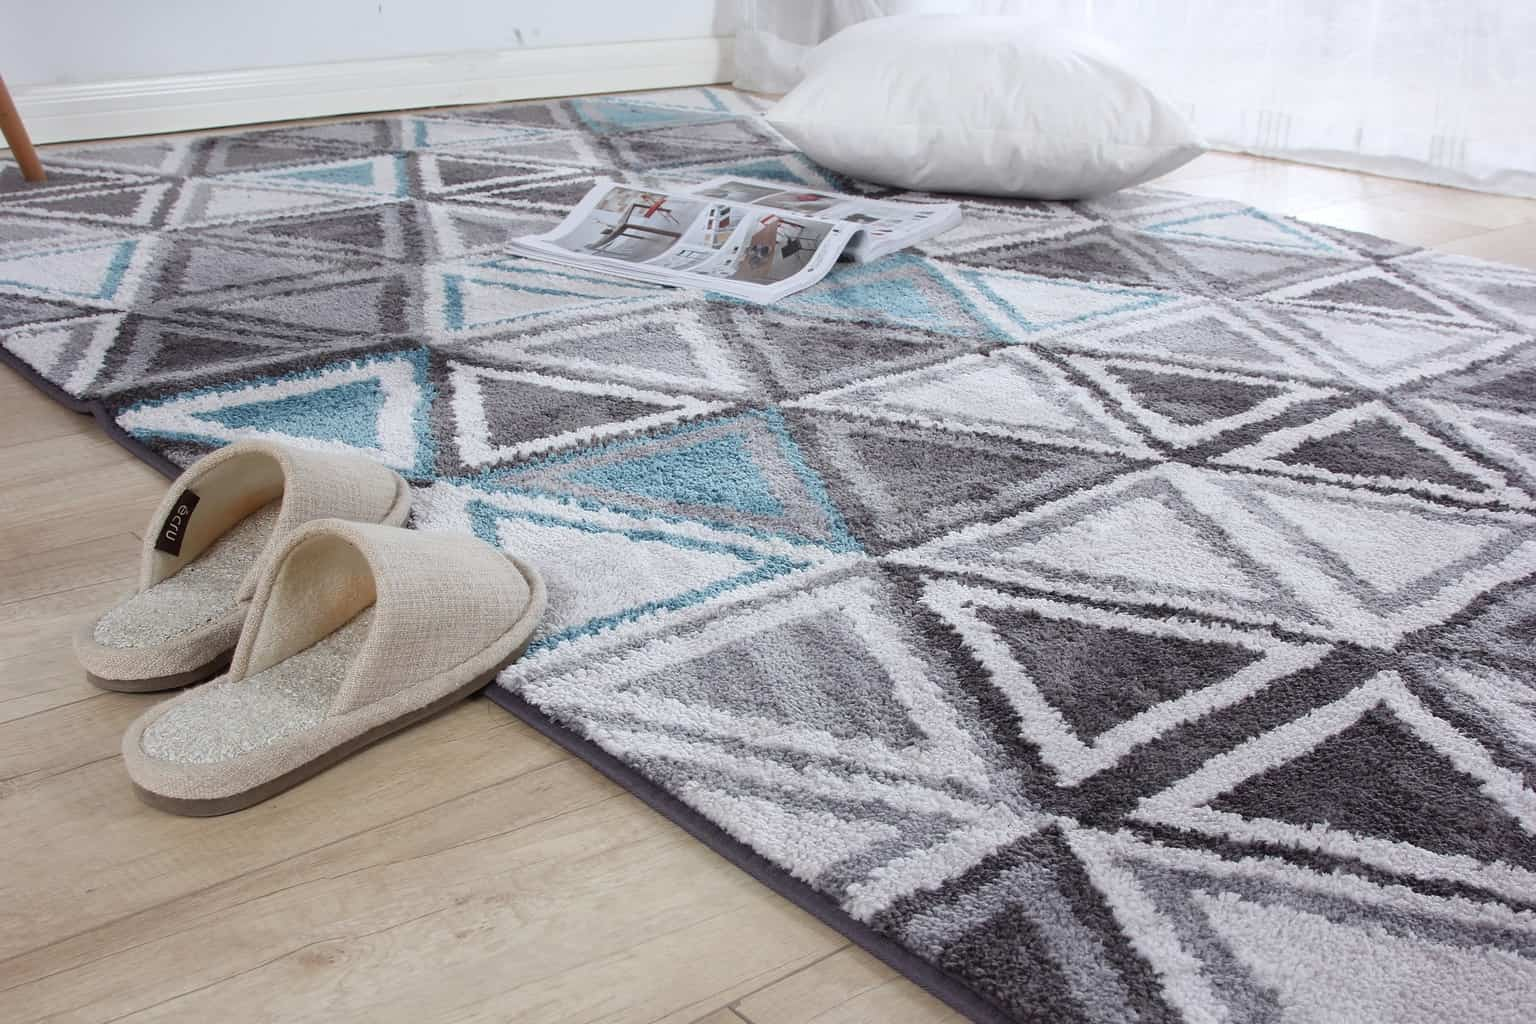 A carpet with a pillow and slippers